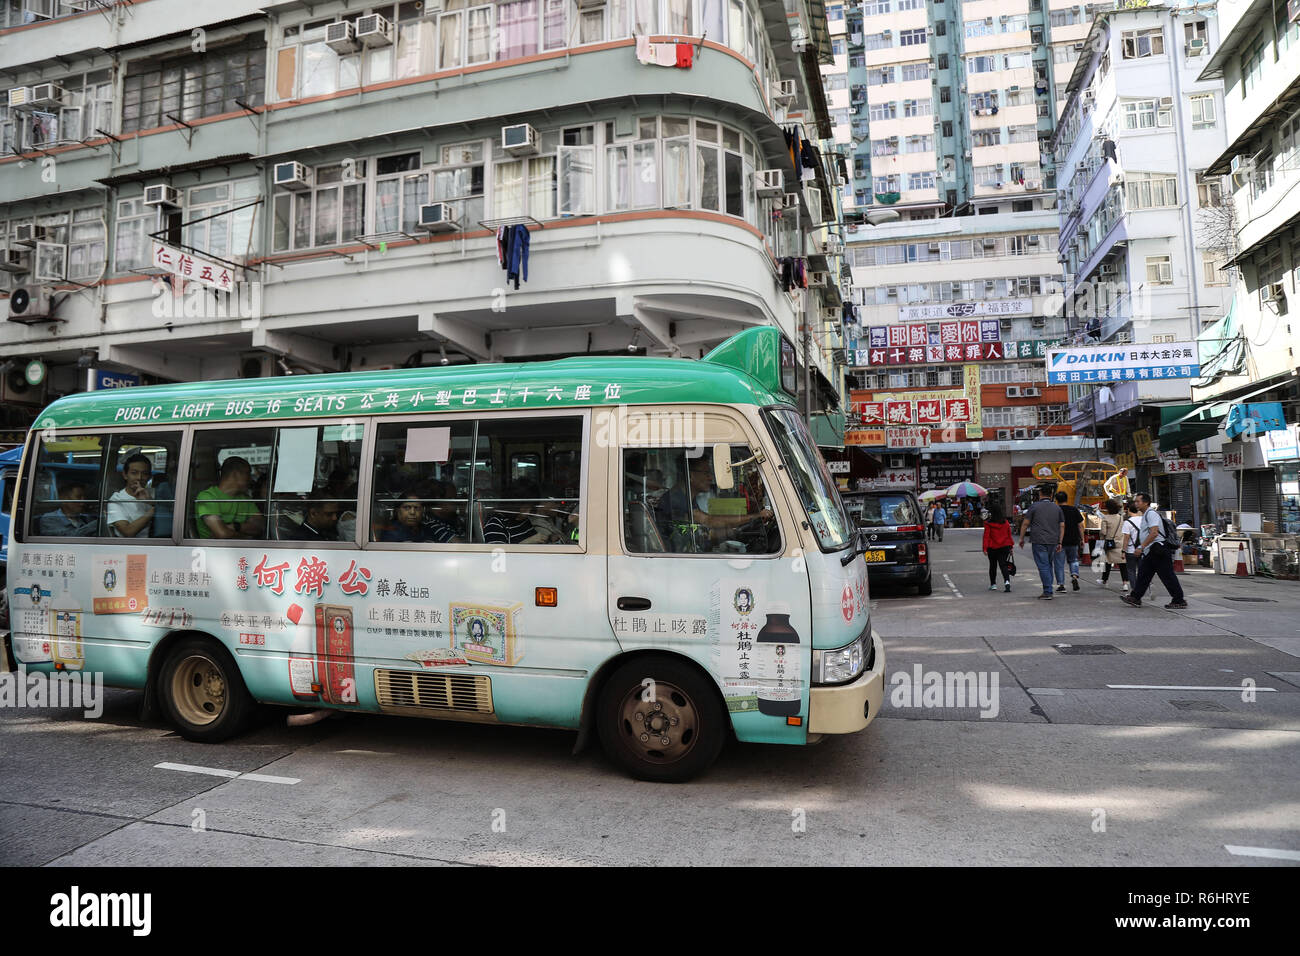 A local minibus transporting passengers through the streets of Kowloon, Hong Kong, The People's Republic of China - Stock Image